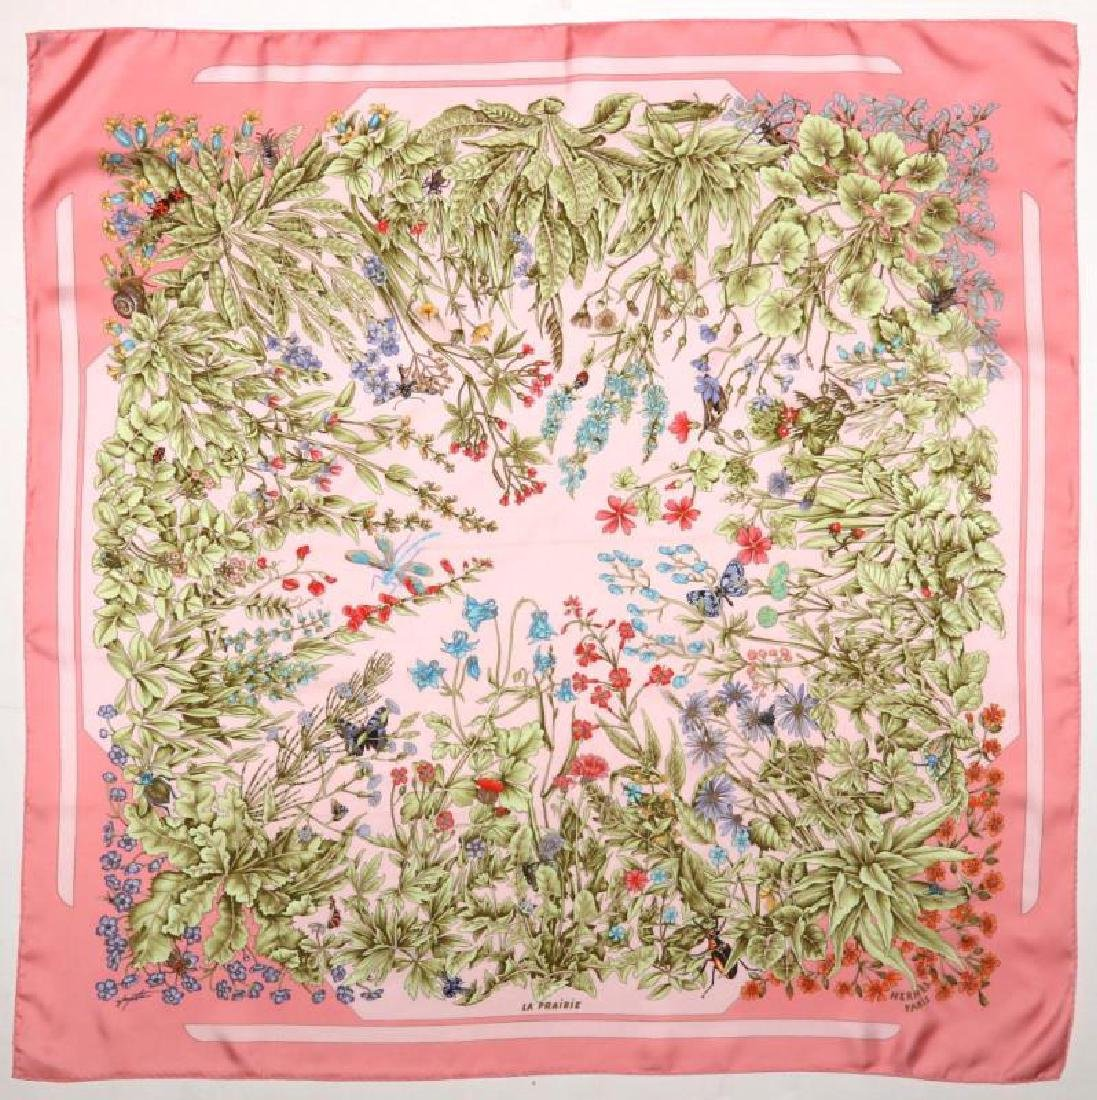 AN HERMES FRENCH DESIGNER SILK SCARF